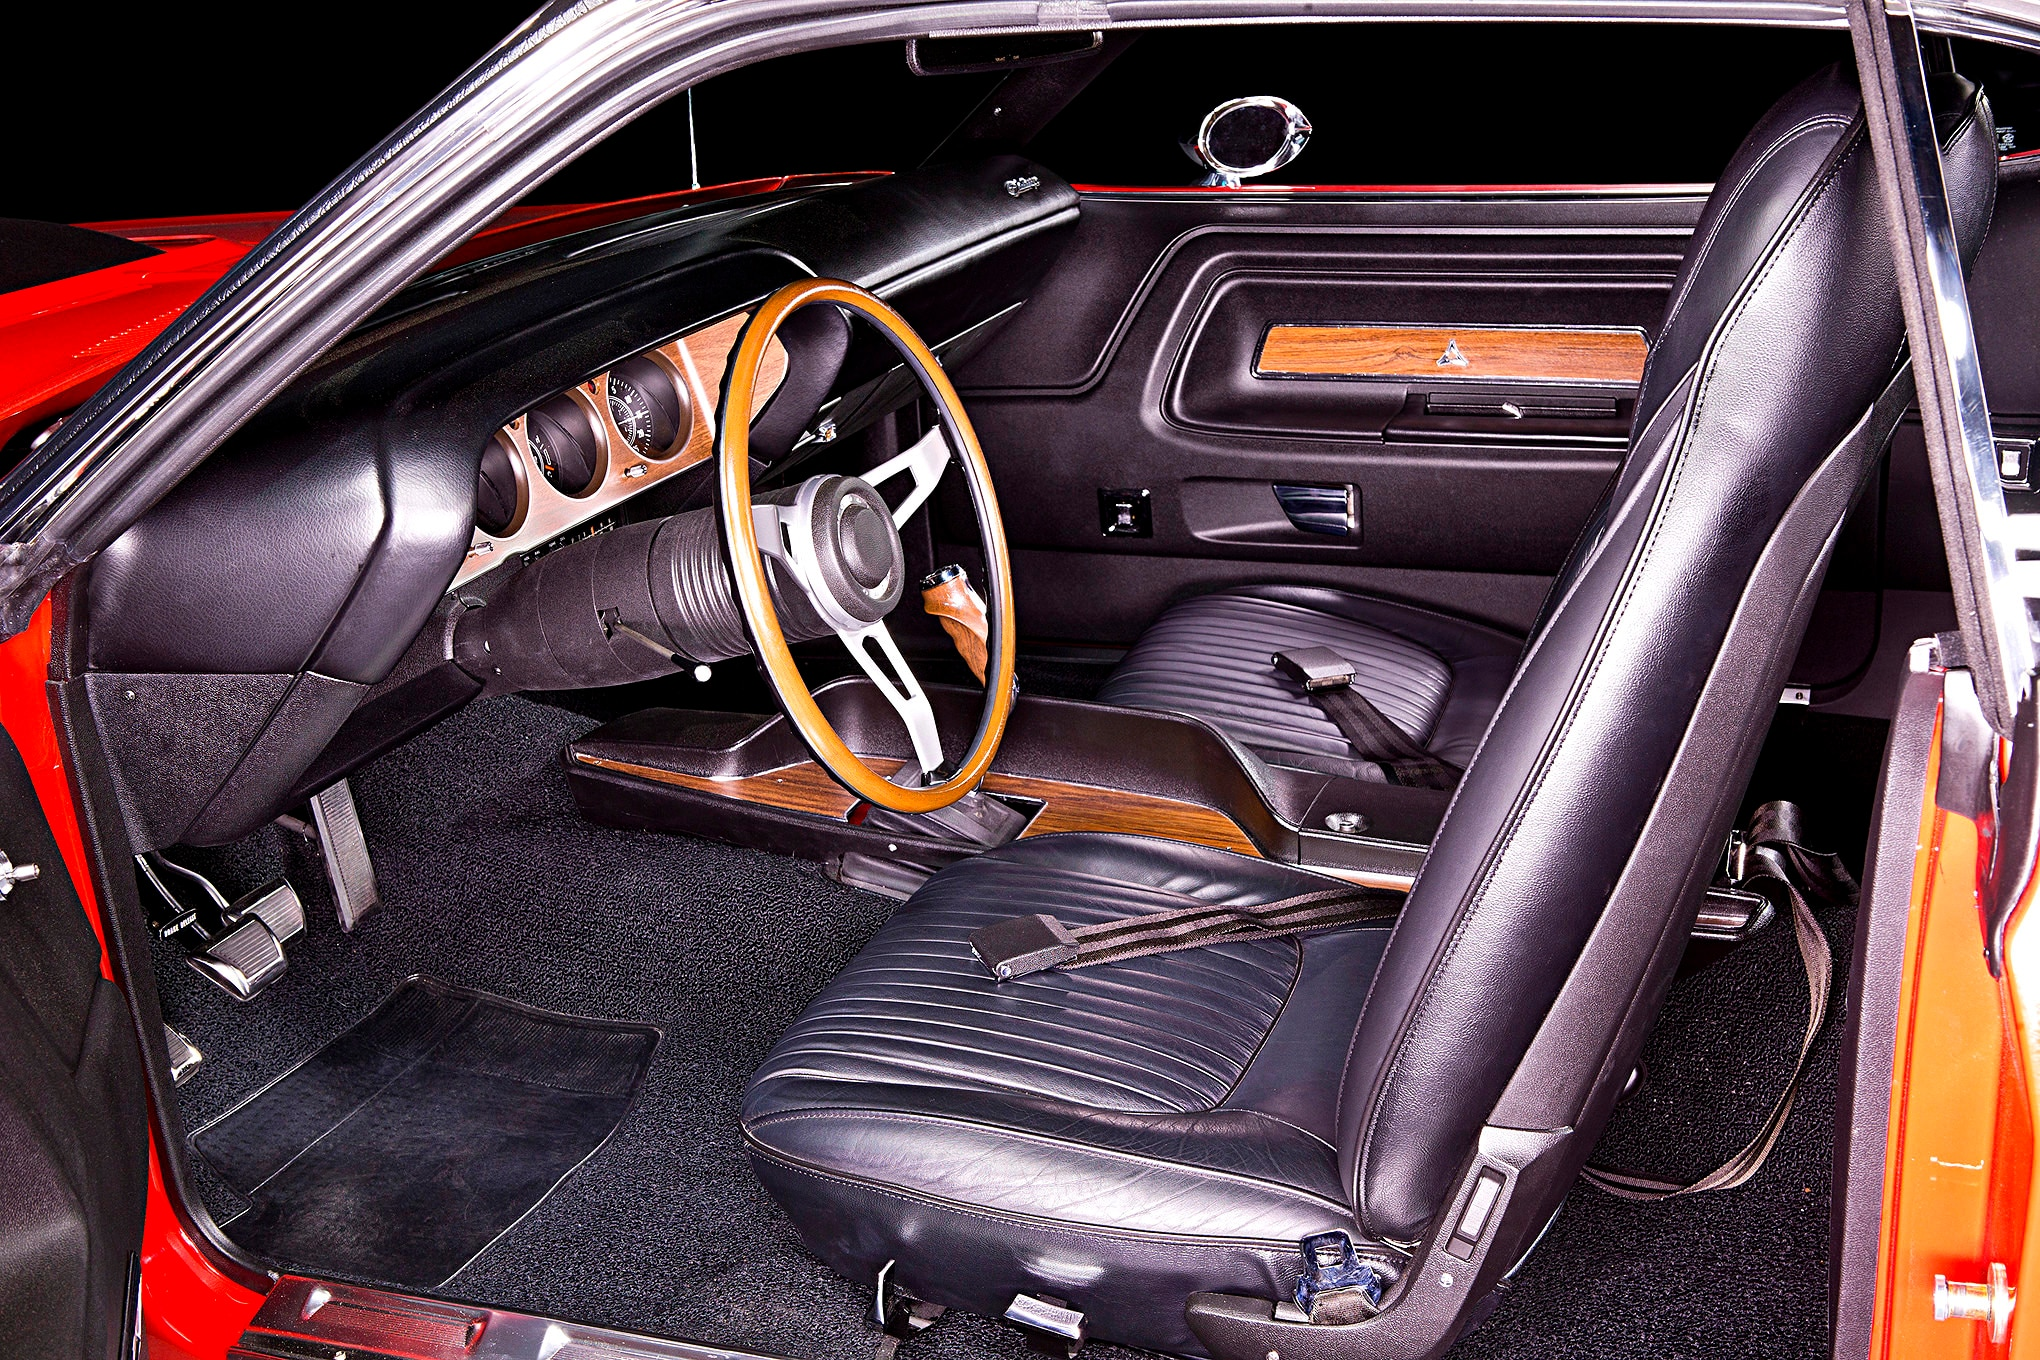 The few interior deviations from factory stock that Kennedy wanted were a factory six-way power seat, power windows, and an AM/FM thumbwheel radio. All were factory options on these cars in 1970 and now he's got them.